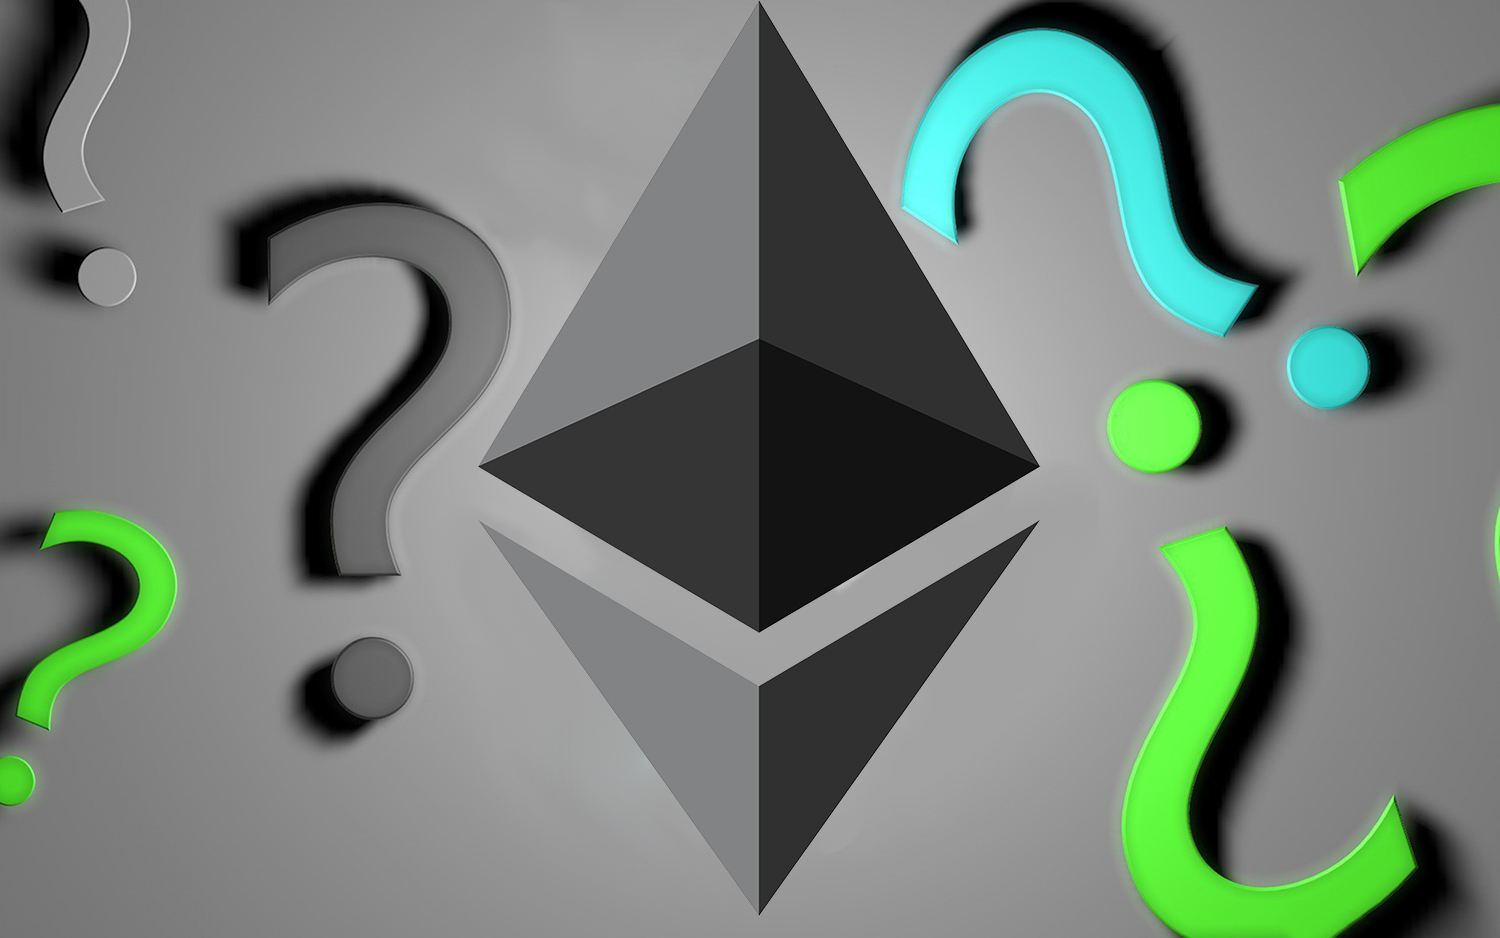 Outspoken Ethereum. How young and audacious Ethereum pressed oldie Bitcoin